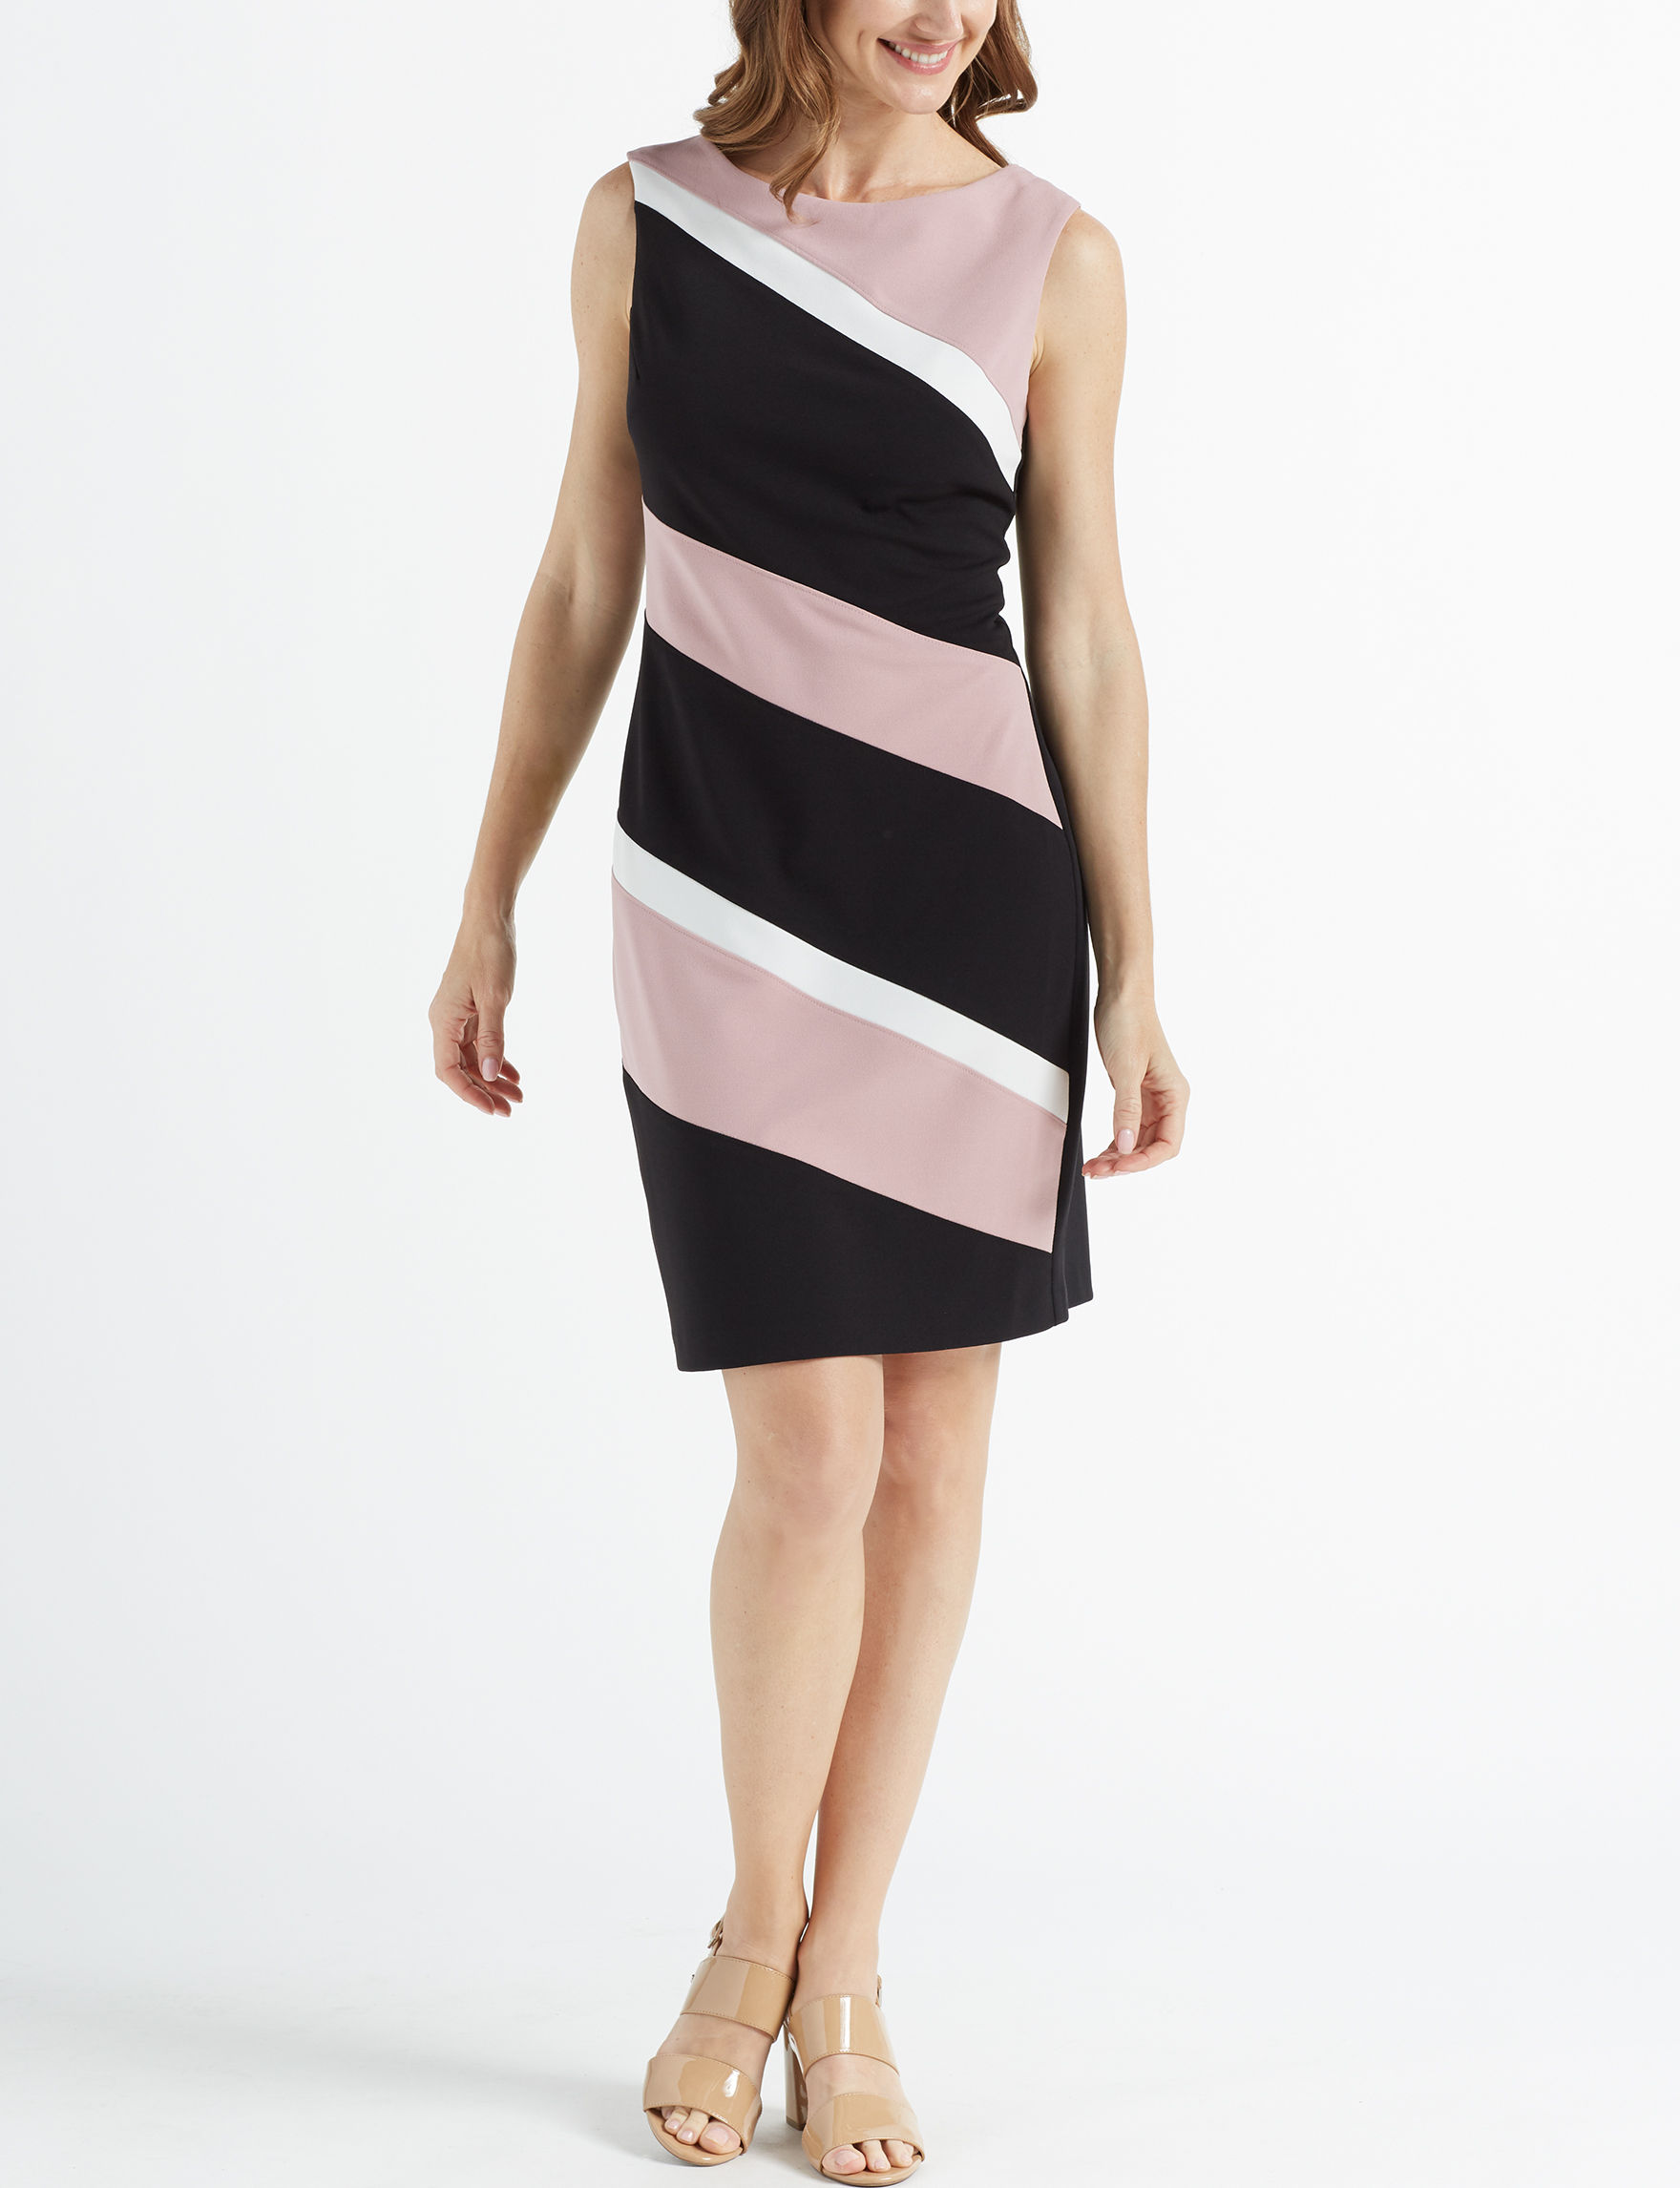 Connected Black / White / Pink Cocktail & Party Everyday & Casual Sheath Dresses